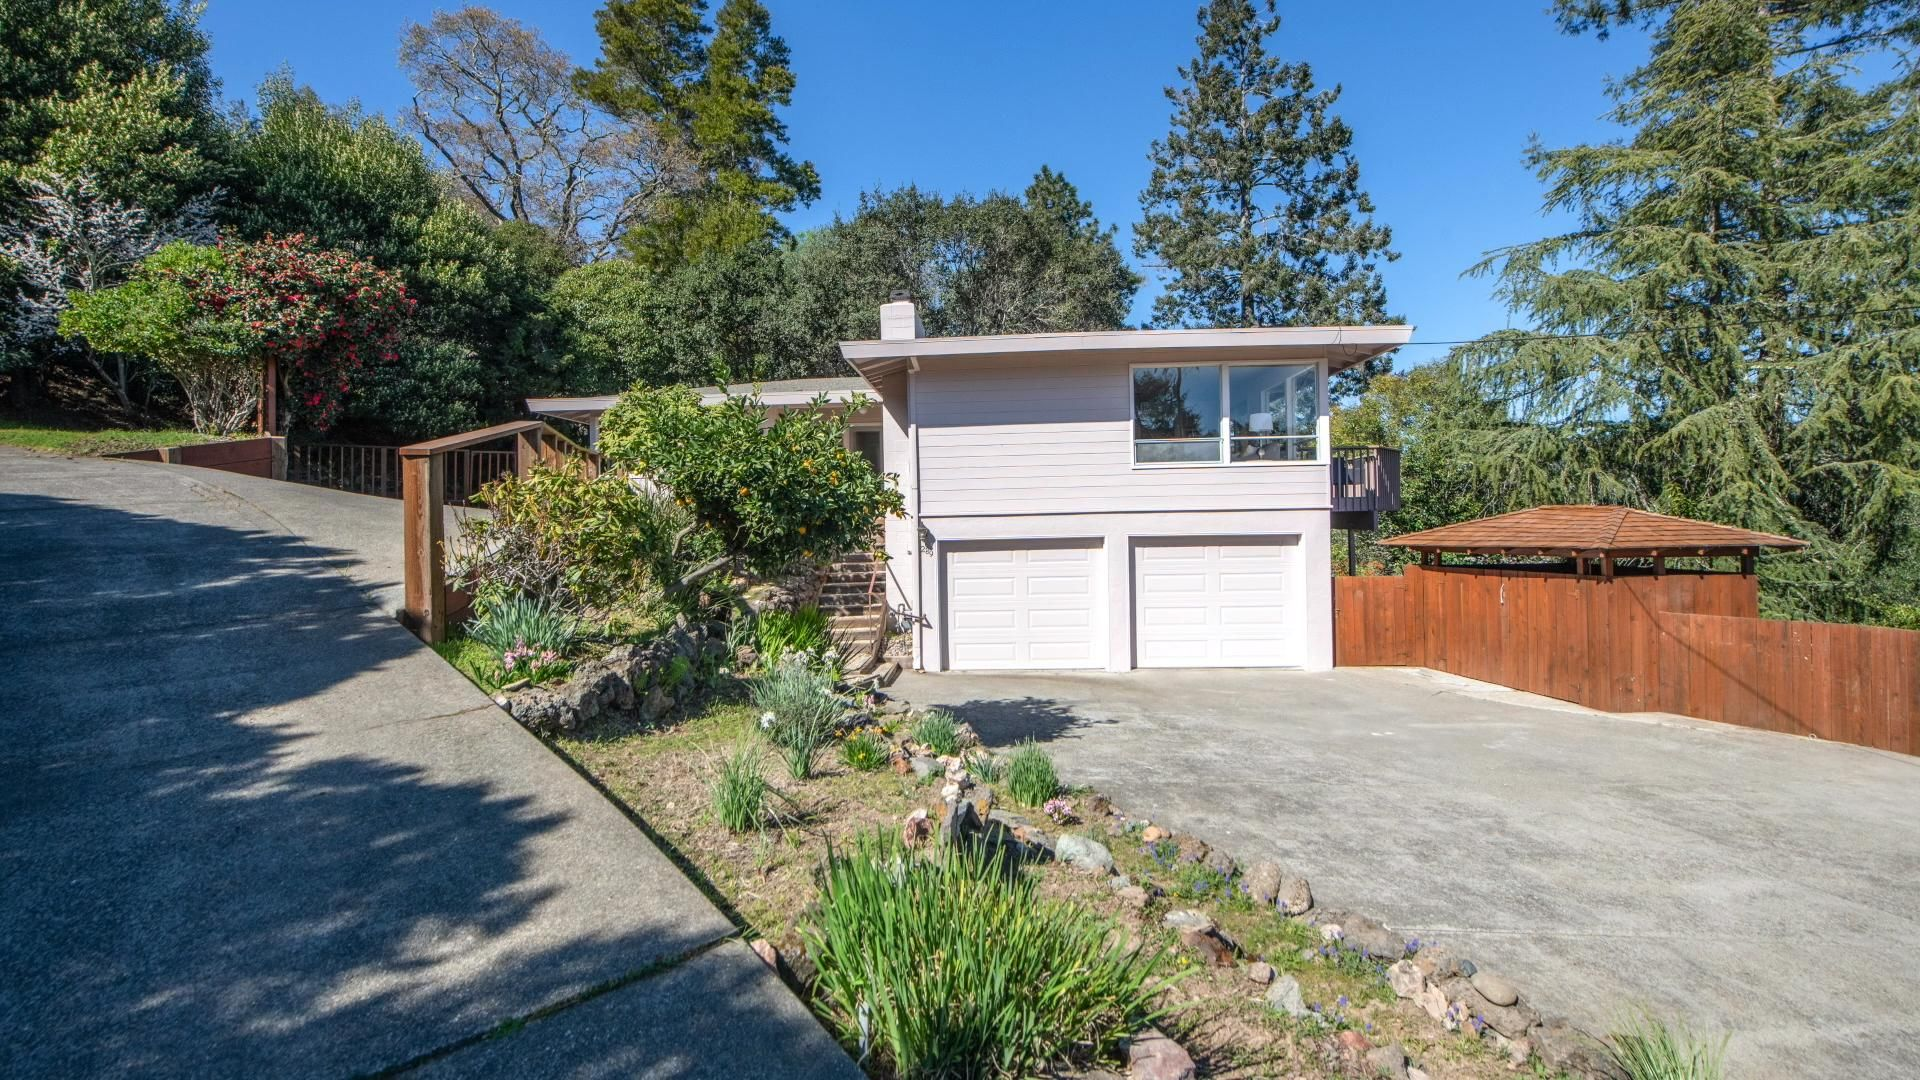 Tucked Away Retreat Gem 4BR/2BA/2CarGarage 289 Bungalow Avenue, San Rafael, CA ANOTHER LOVELY HOME. MORE HAPPY CLIENTS.  WE'RE STILL MAKING THINGS HAPPEN! Find out what we can do for you while respecting CDC guidelines. Call me at 415.516.5760.  #HELMRealEstate #MarcusMillerRealEstate #HELMCrew #sfrealestate #sanfranciscorealestate #bayarearealestate #sfhome #homesweethome #sanfrancisco #HappyClients #DesiredResults #SanRafaelRealEstate #SOLD